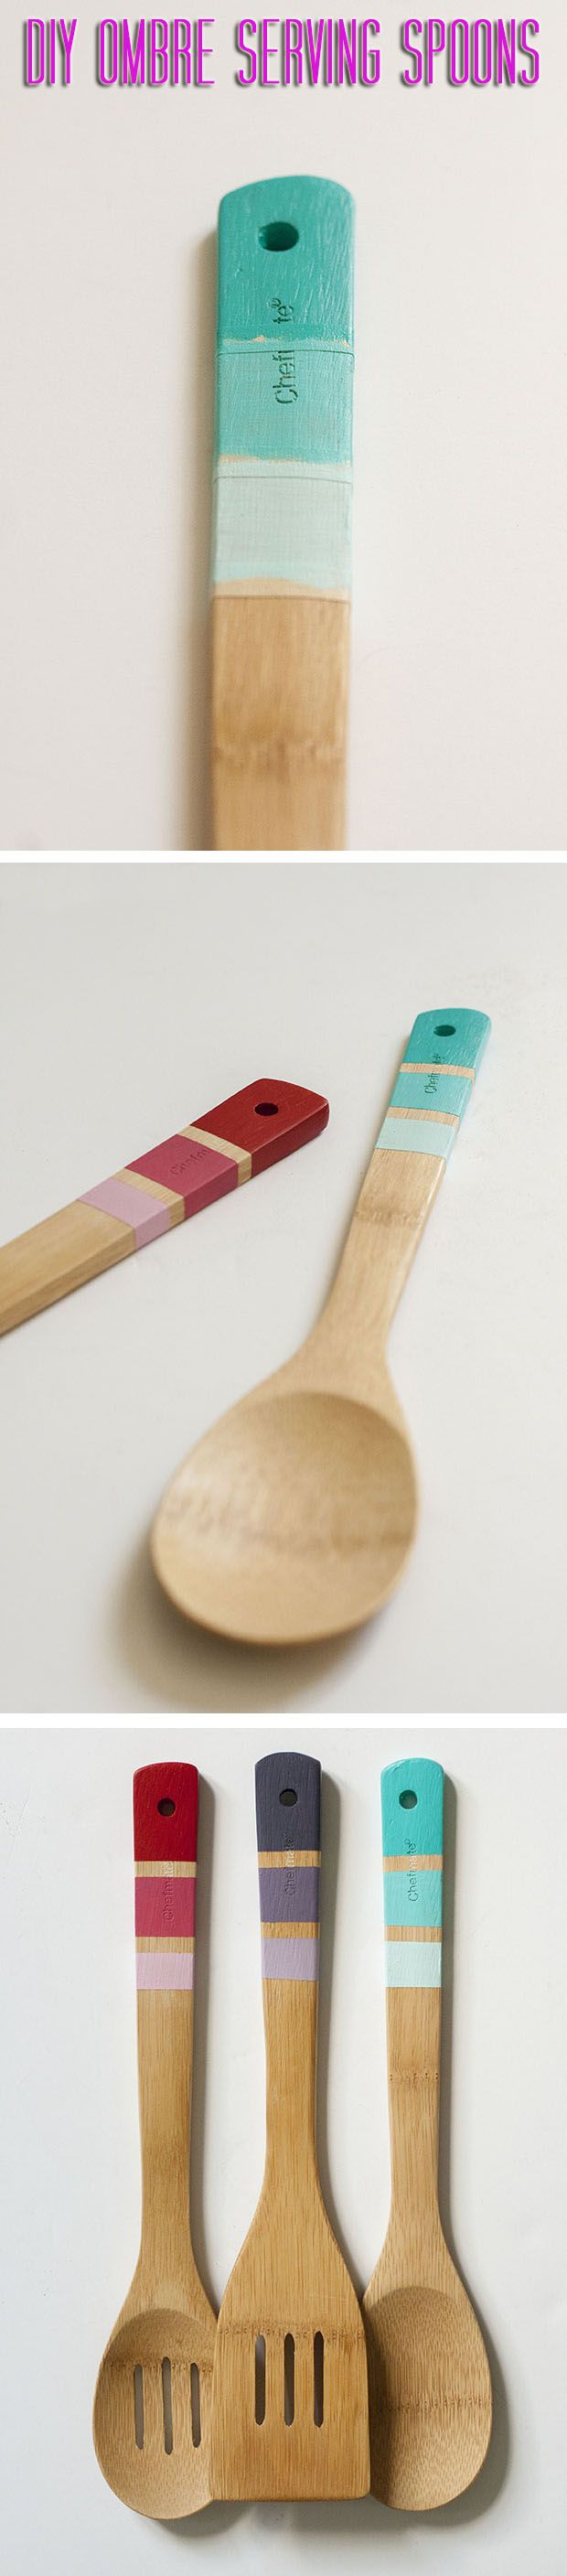 Perfect summer hostess gift. #DIY ombre serving spoons for the win!